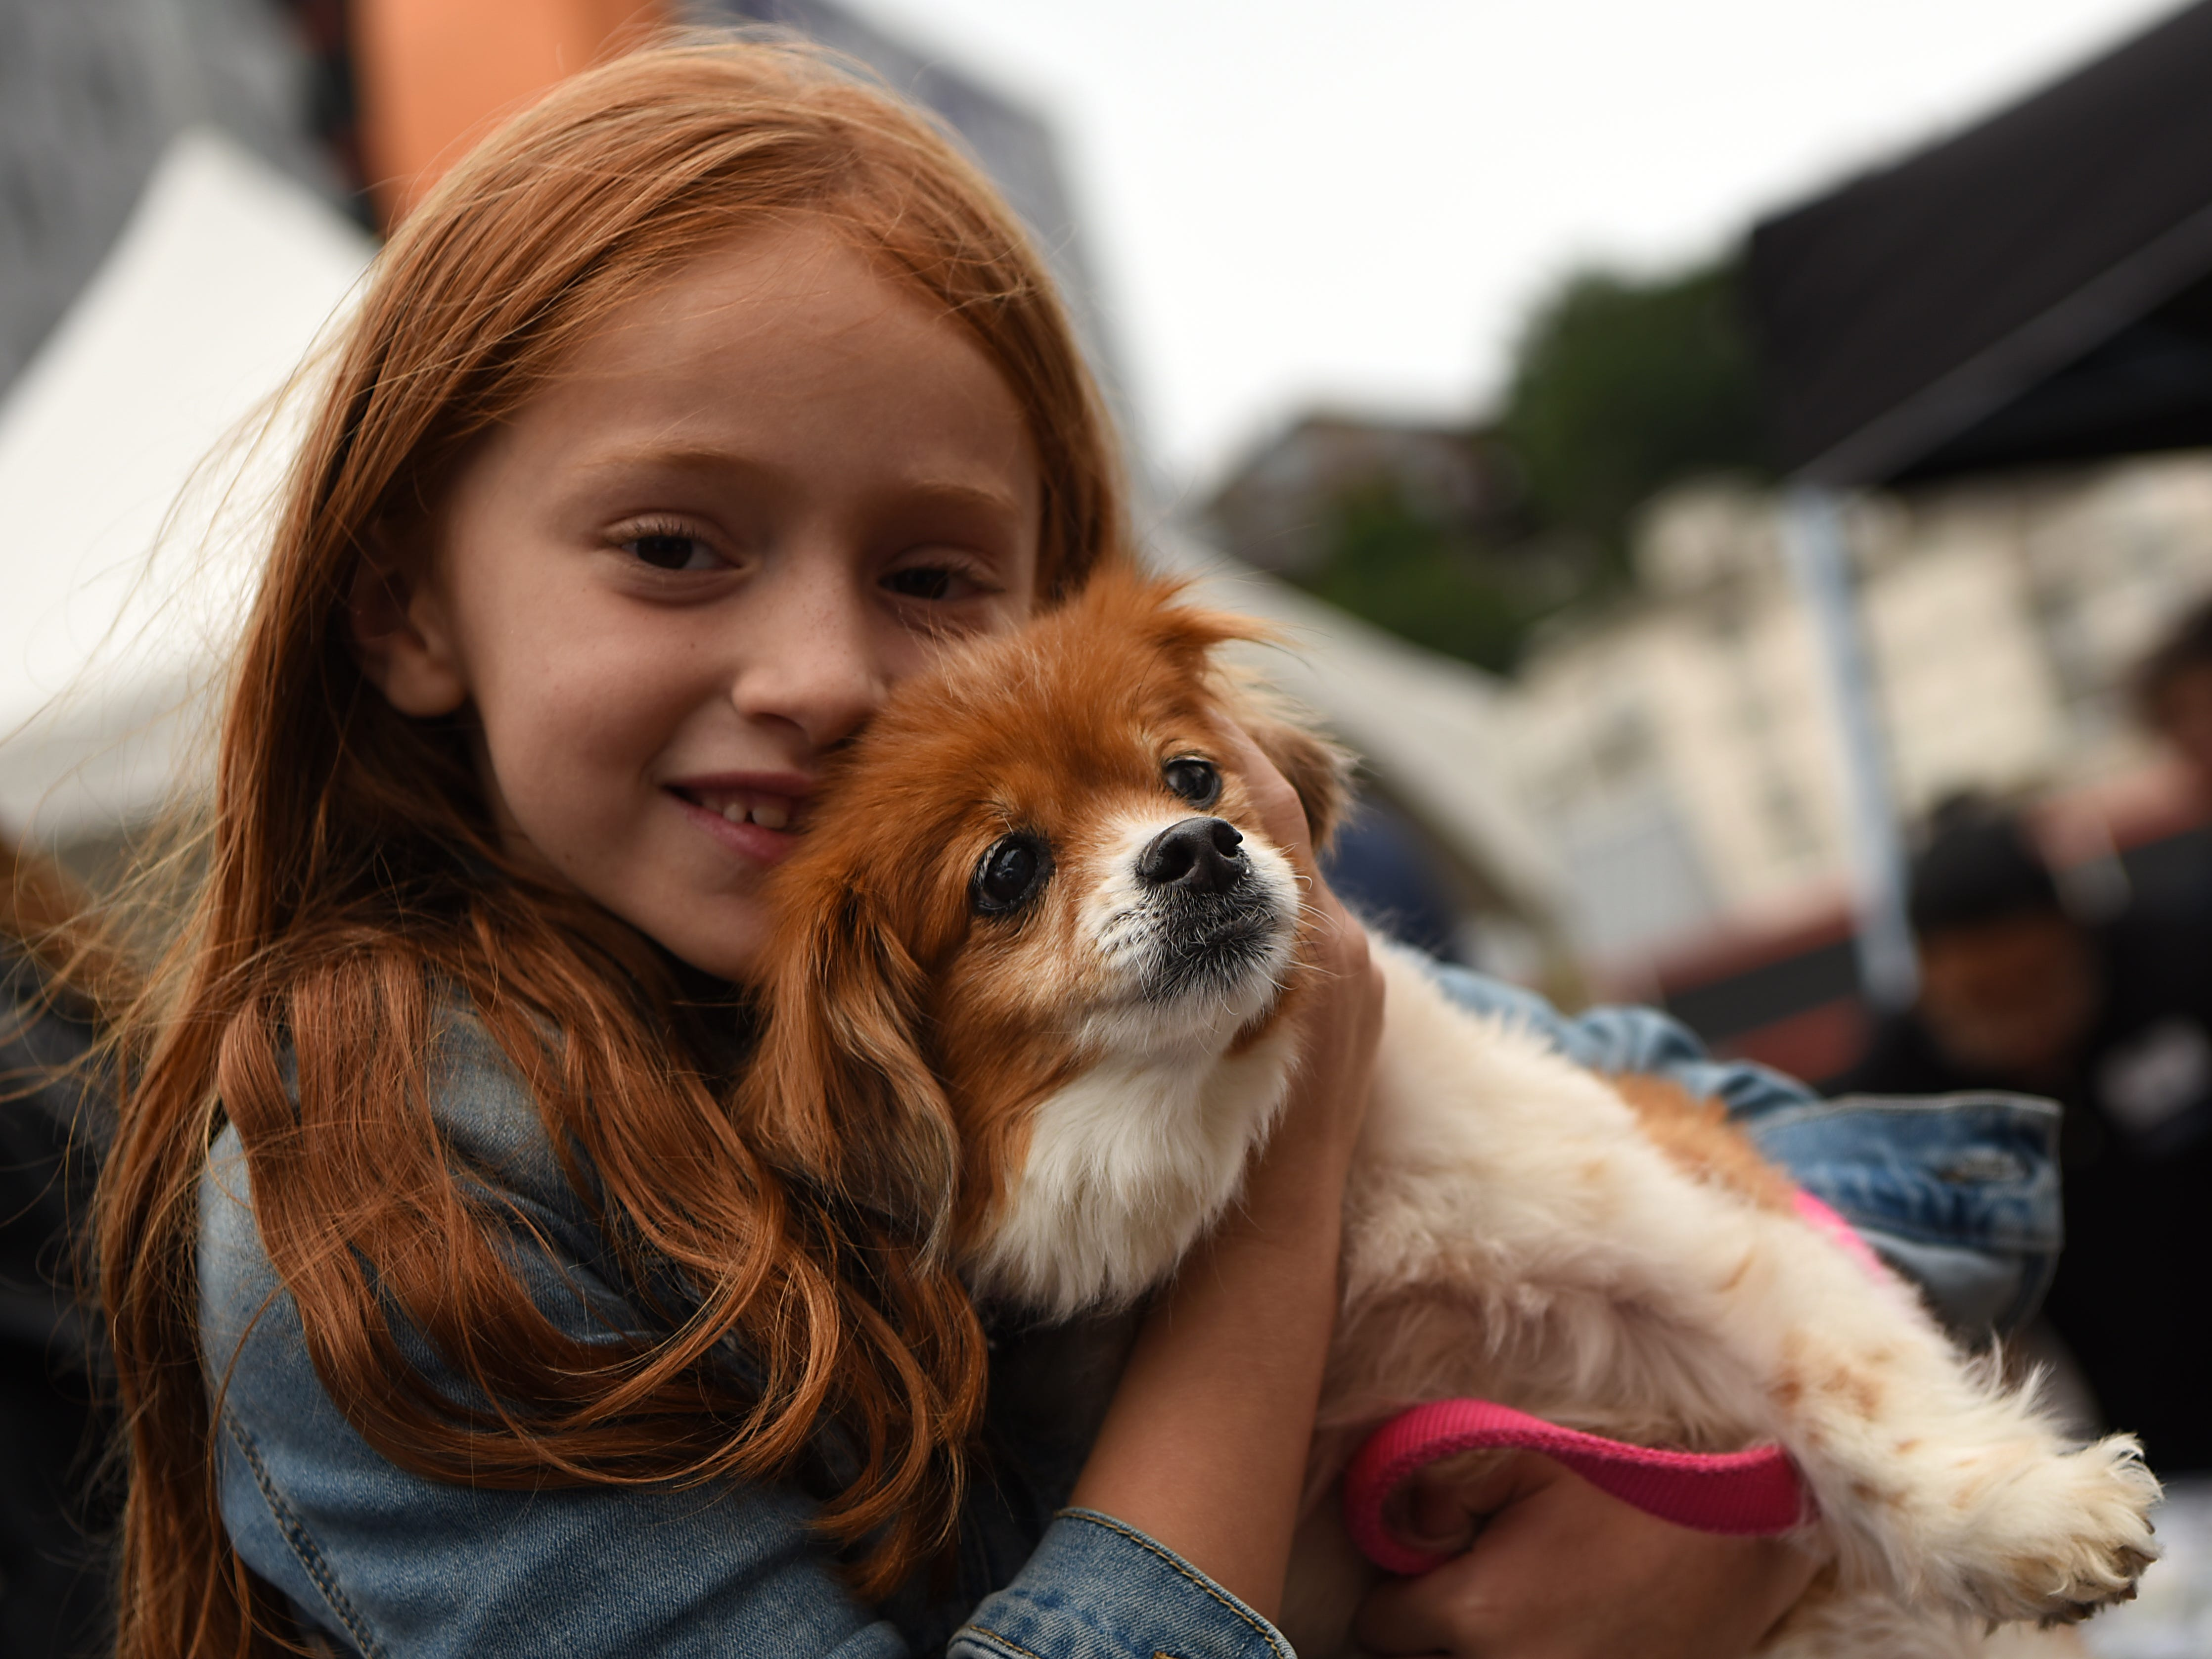 Emma Appel, six years old from Edgewater, holds Rosie Perez, a seven year old mixed breed, at Woofstock 2018, a benefit for Bergen County animal rescue organizations, at City Place in Edgewater on Saturday September 8, 2018.